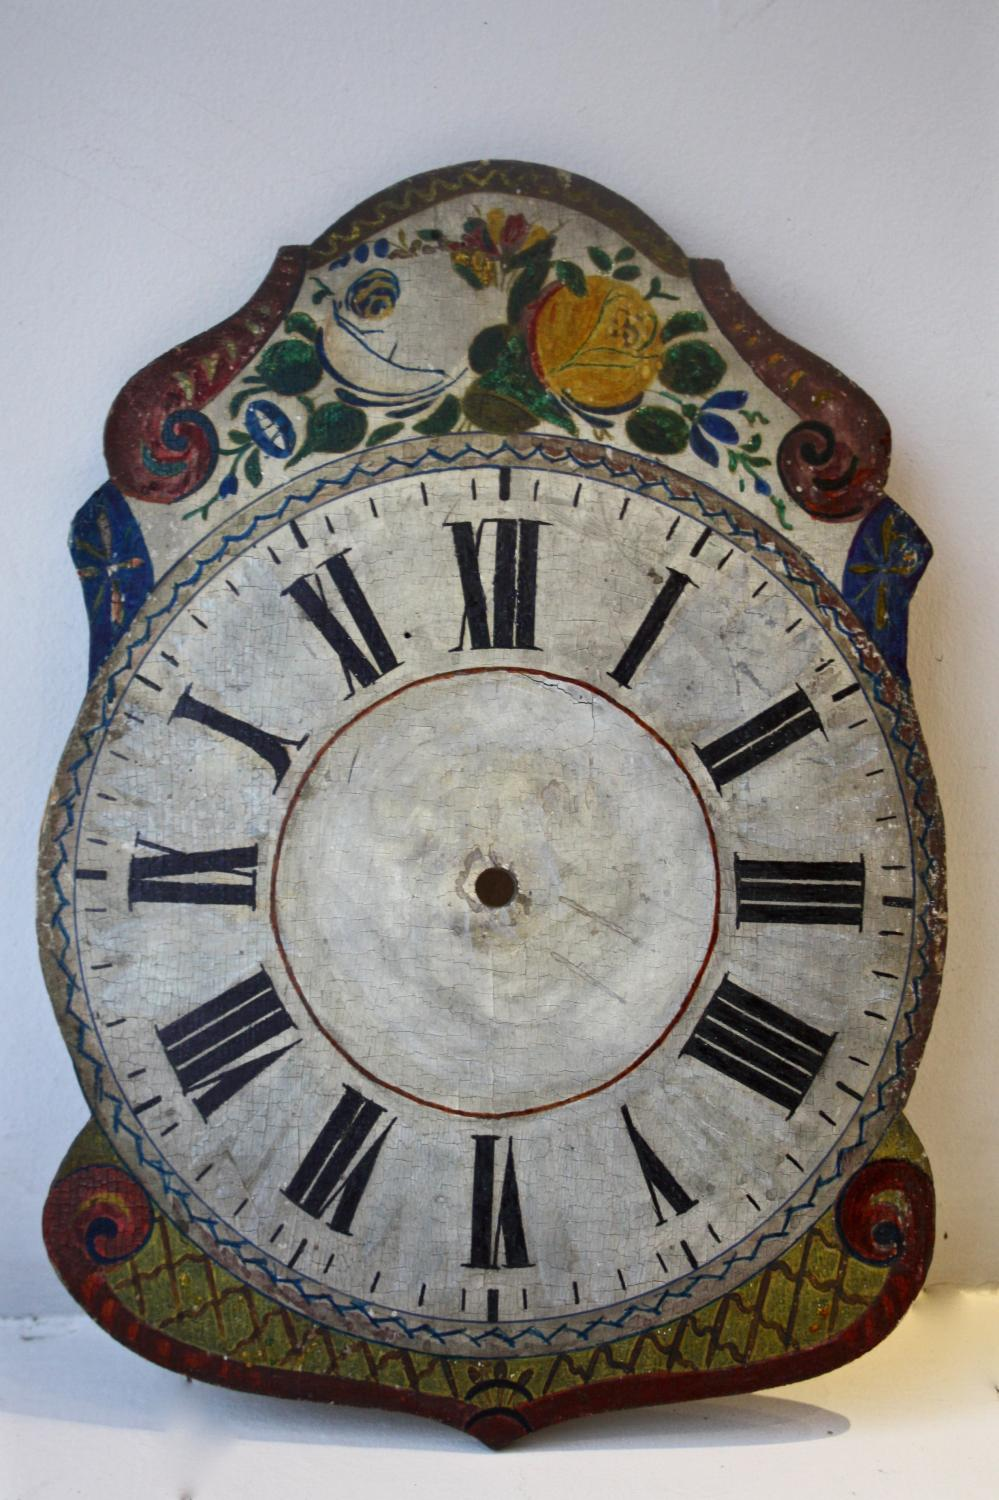 Painted clock face